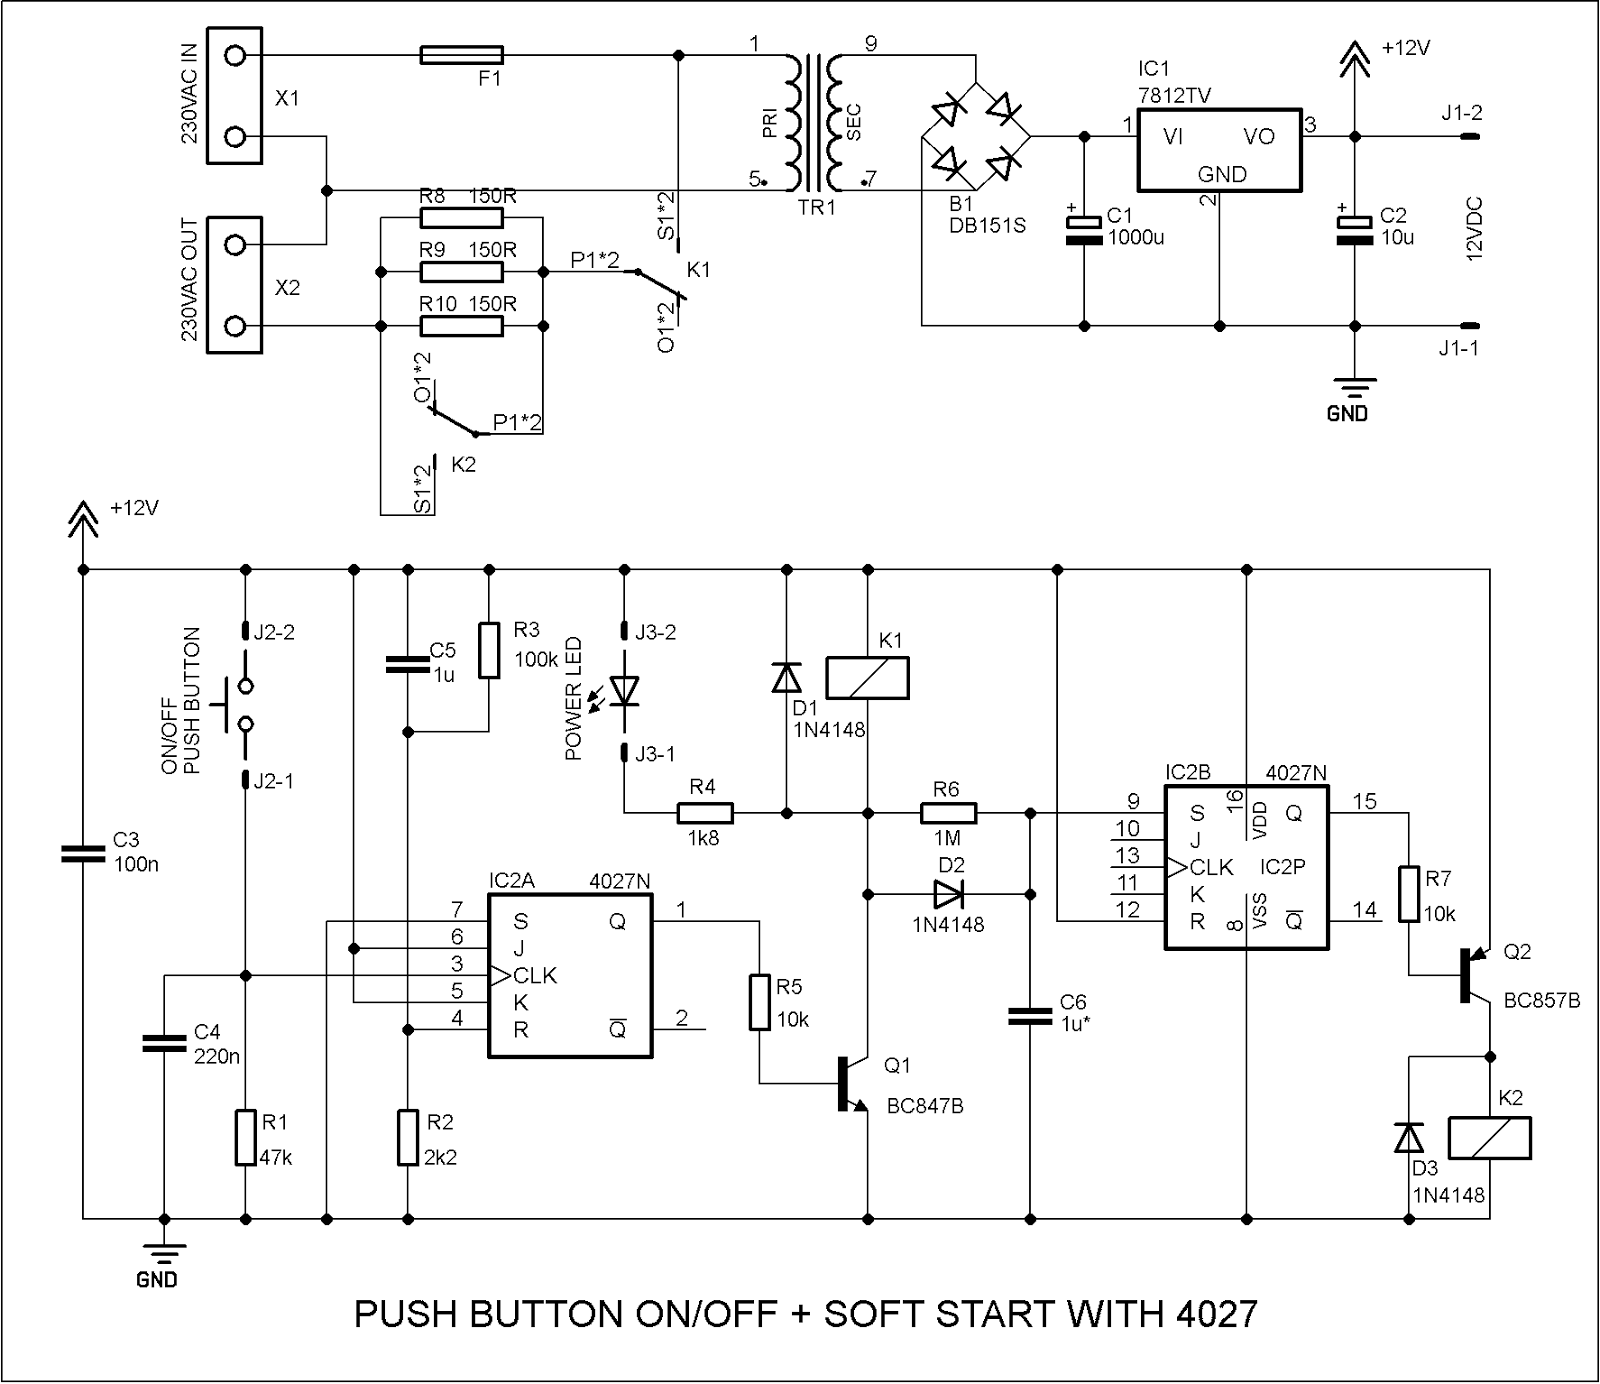 small resolution of the first timer is wired as push button toggle switch and the second is an ordinary switch connected again with delay circuit